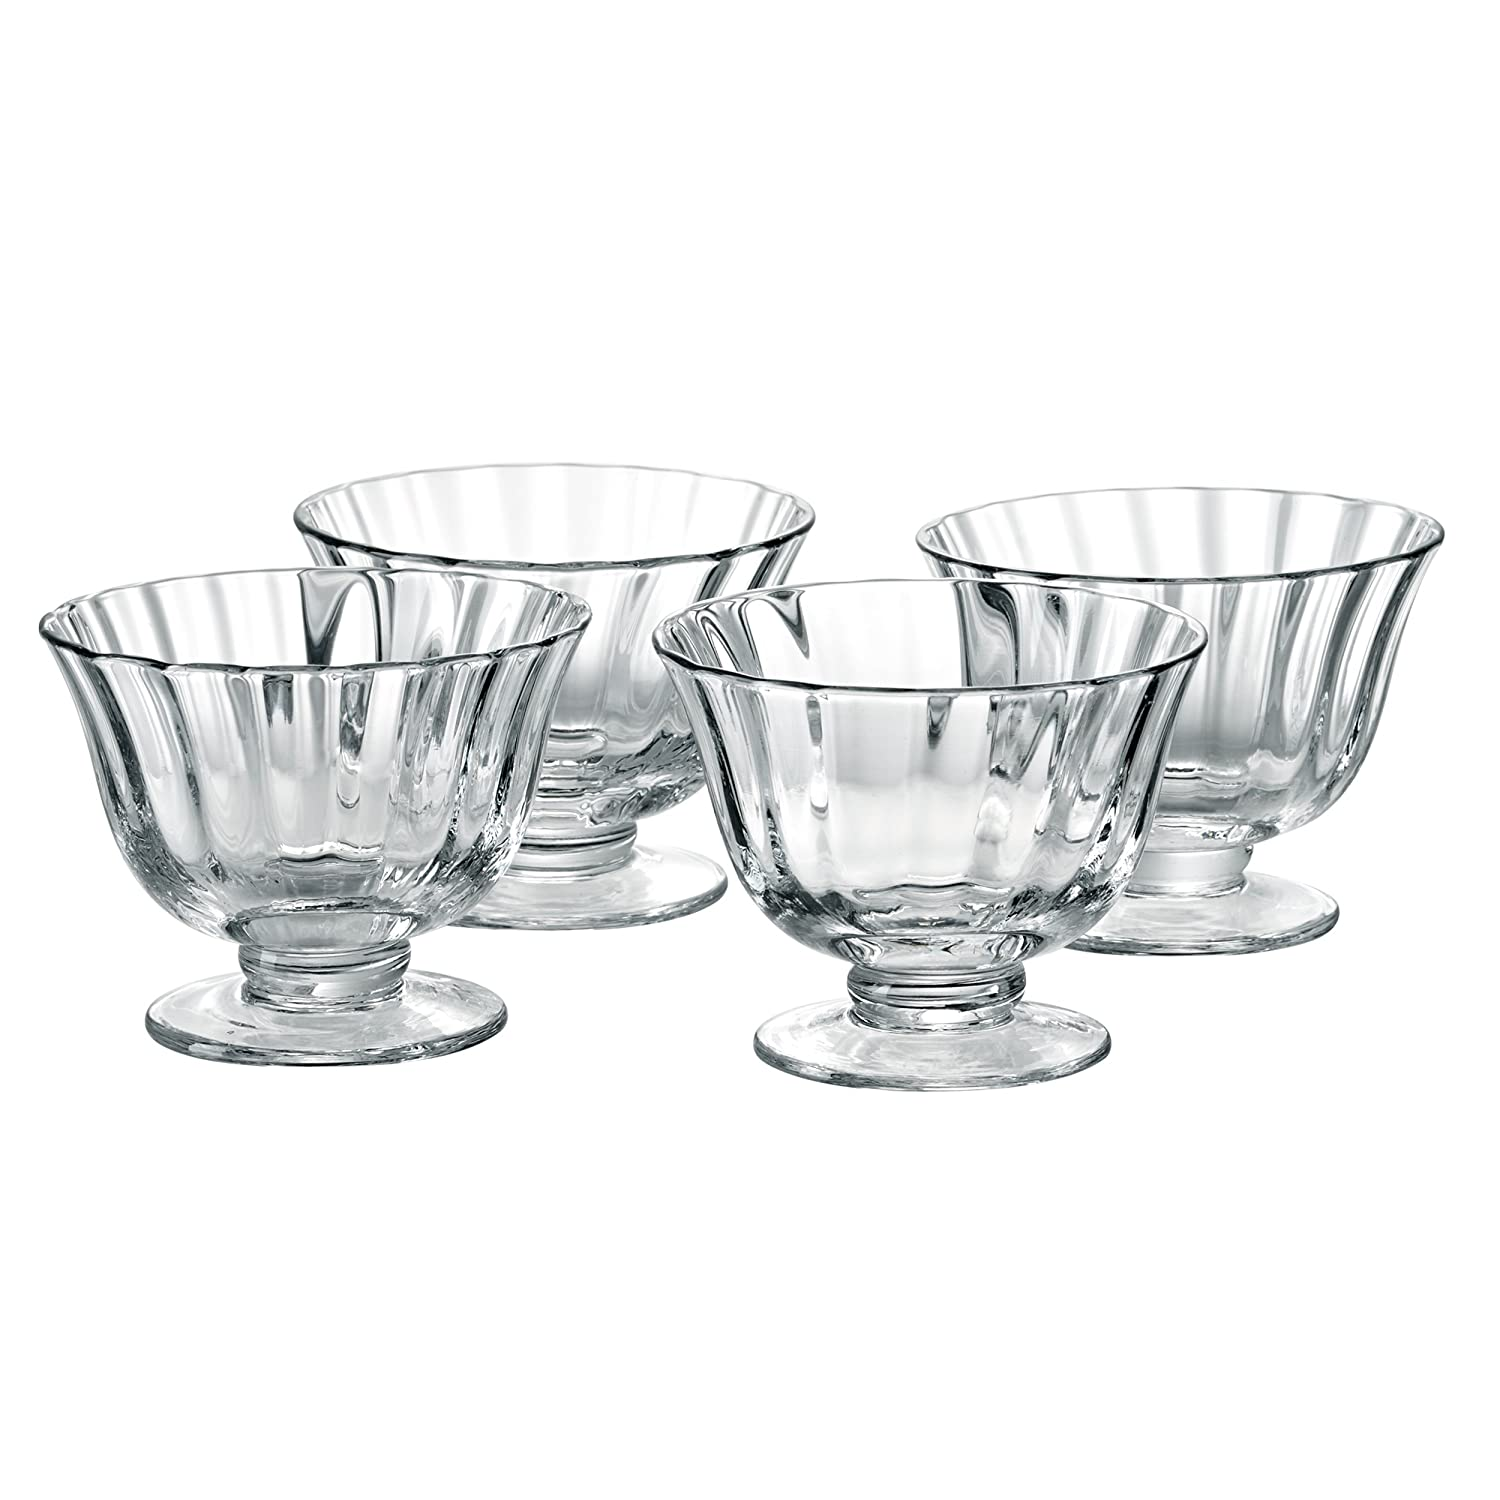 Aspen Individual Trifle Bowls, Set of 4, Transparent Artland 80544